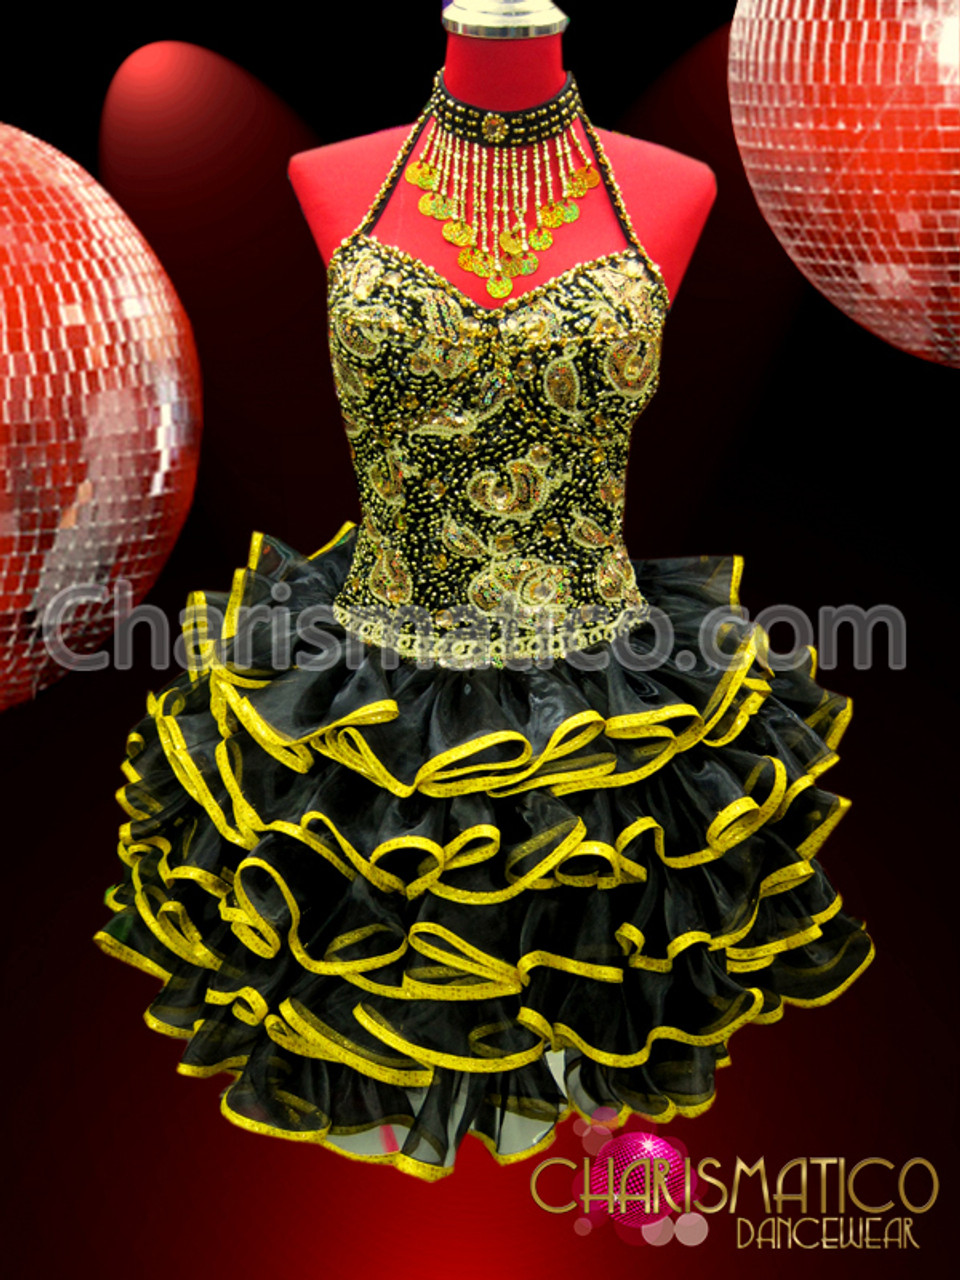 CHARISMATICO Corset style gold accented lace embellished bright pink dolly dress